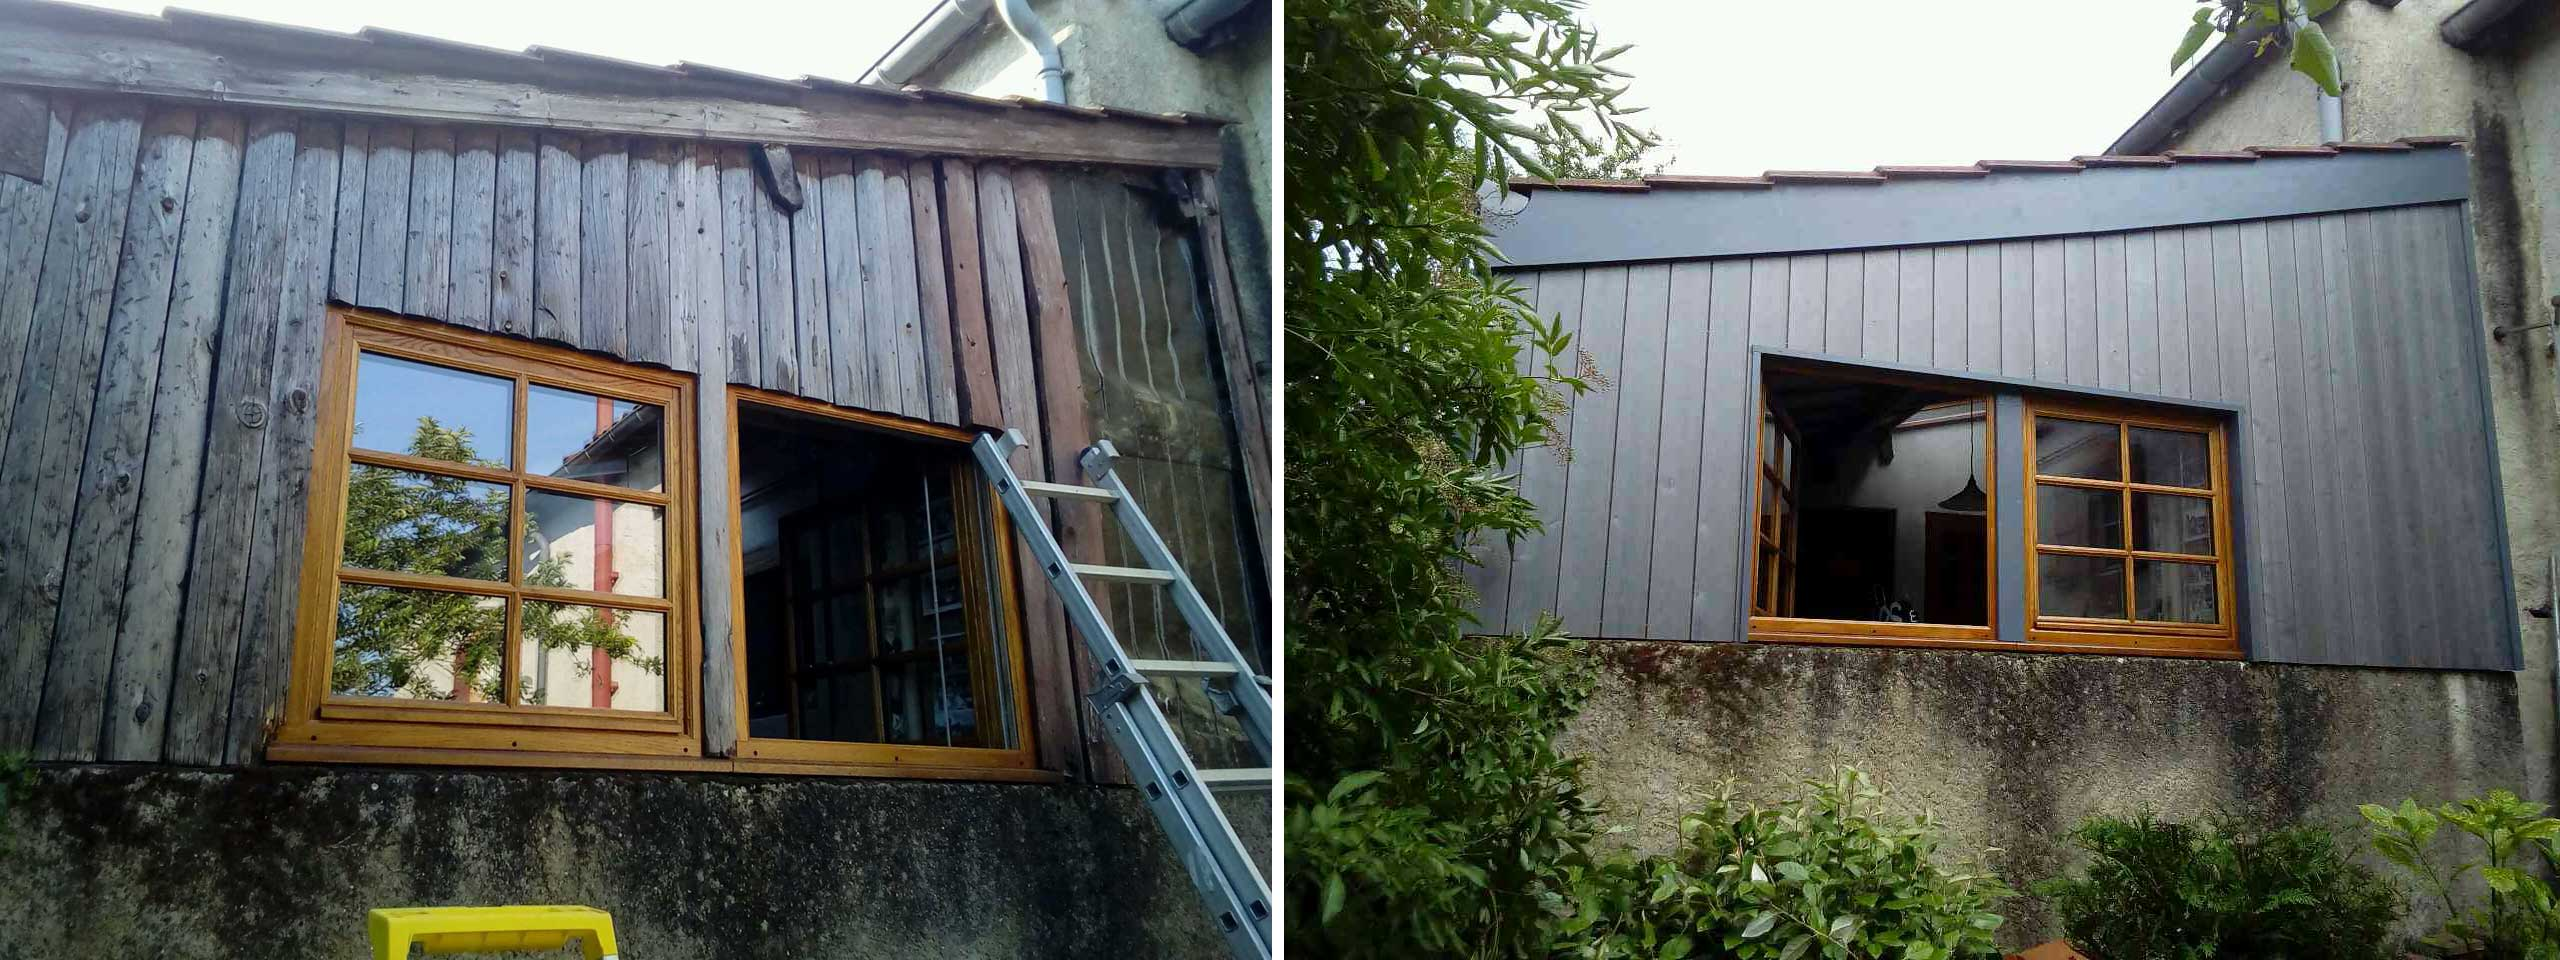 Cladding before and after